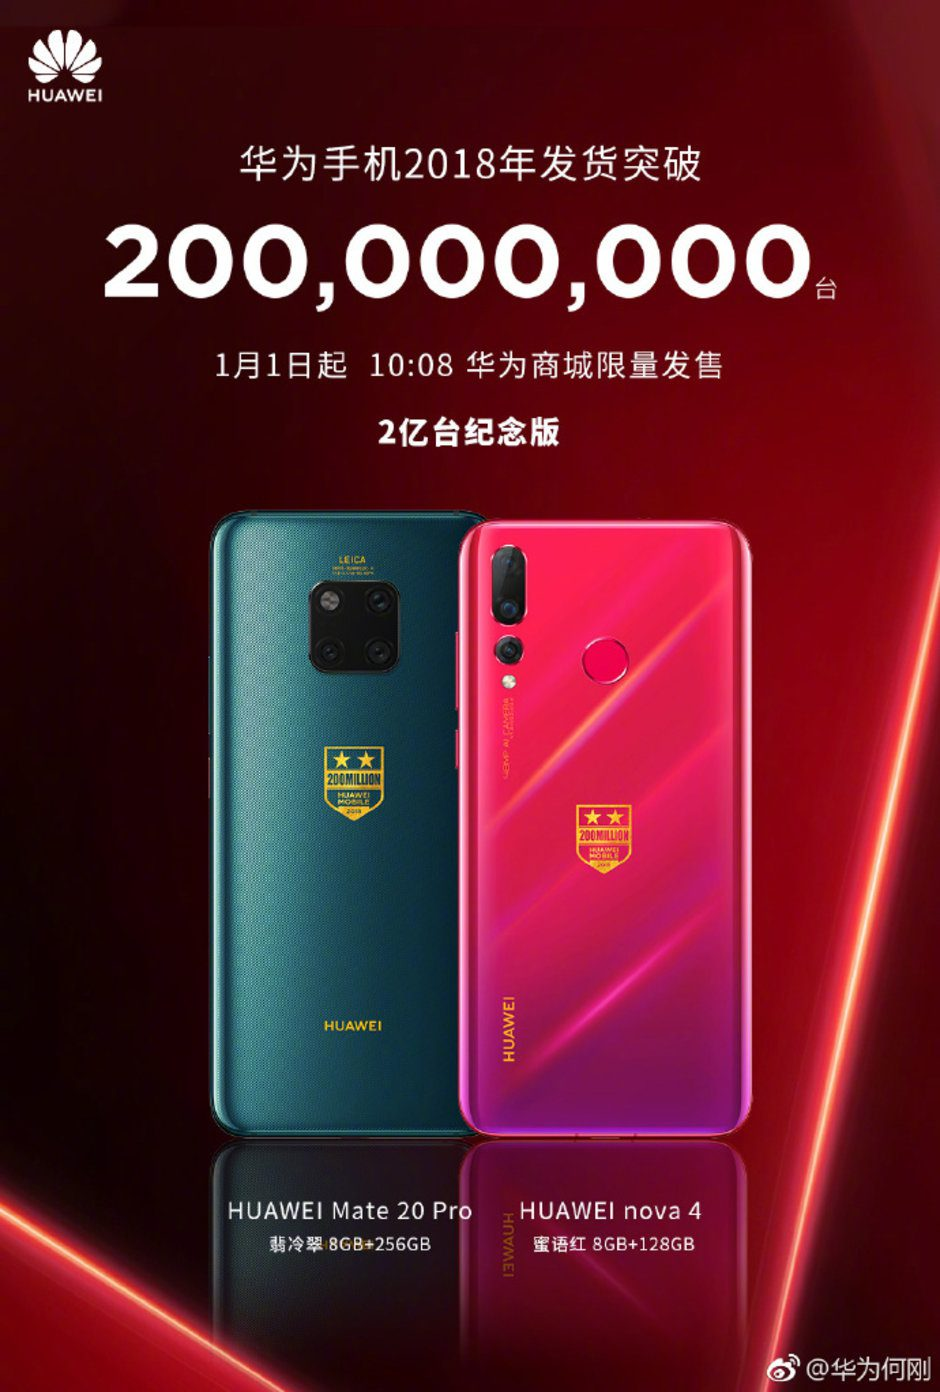 Huawei Special Edition